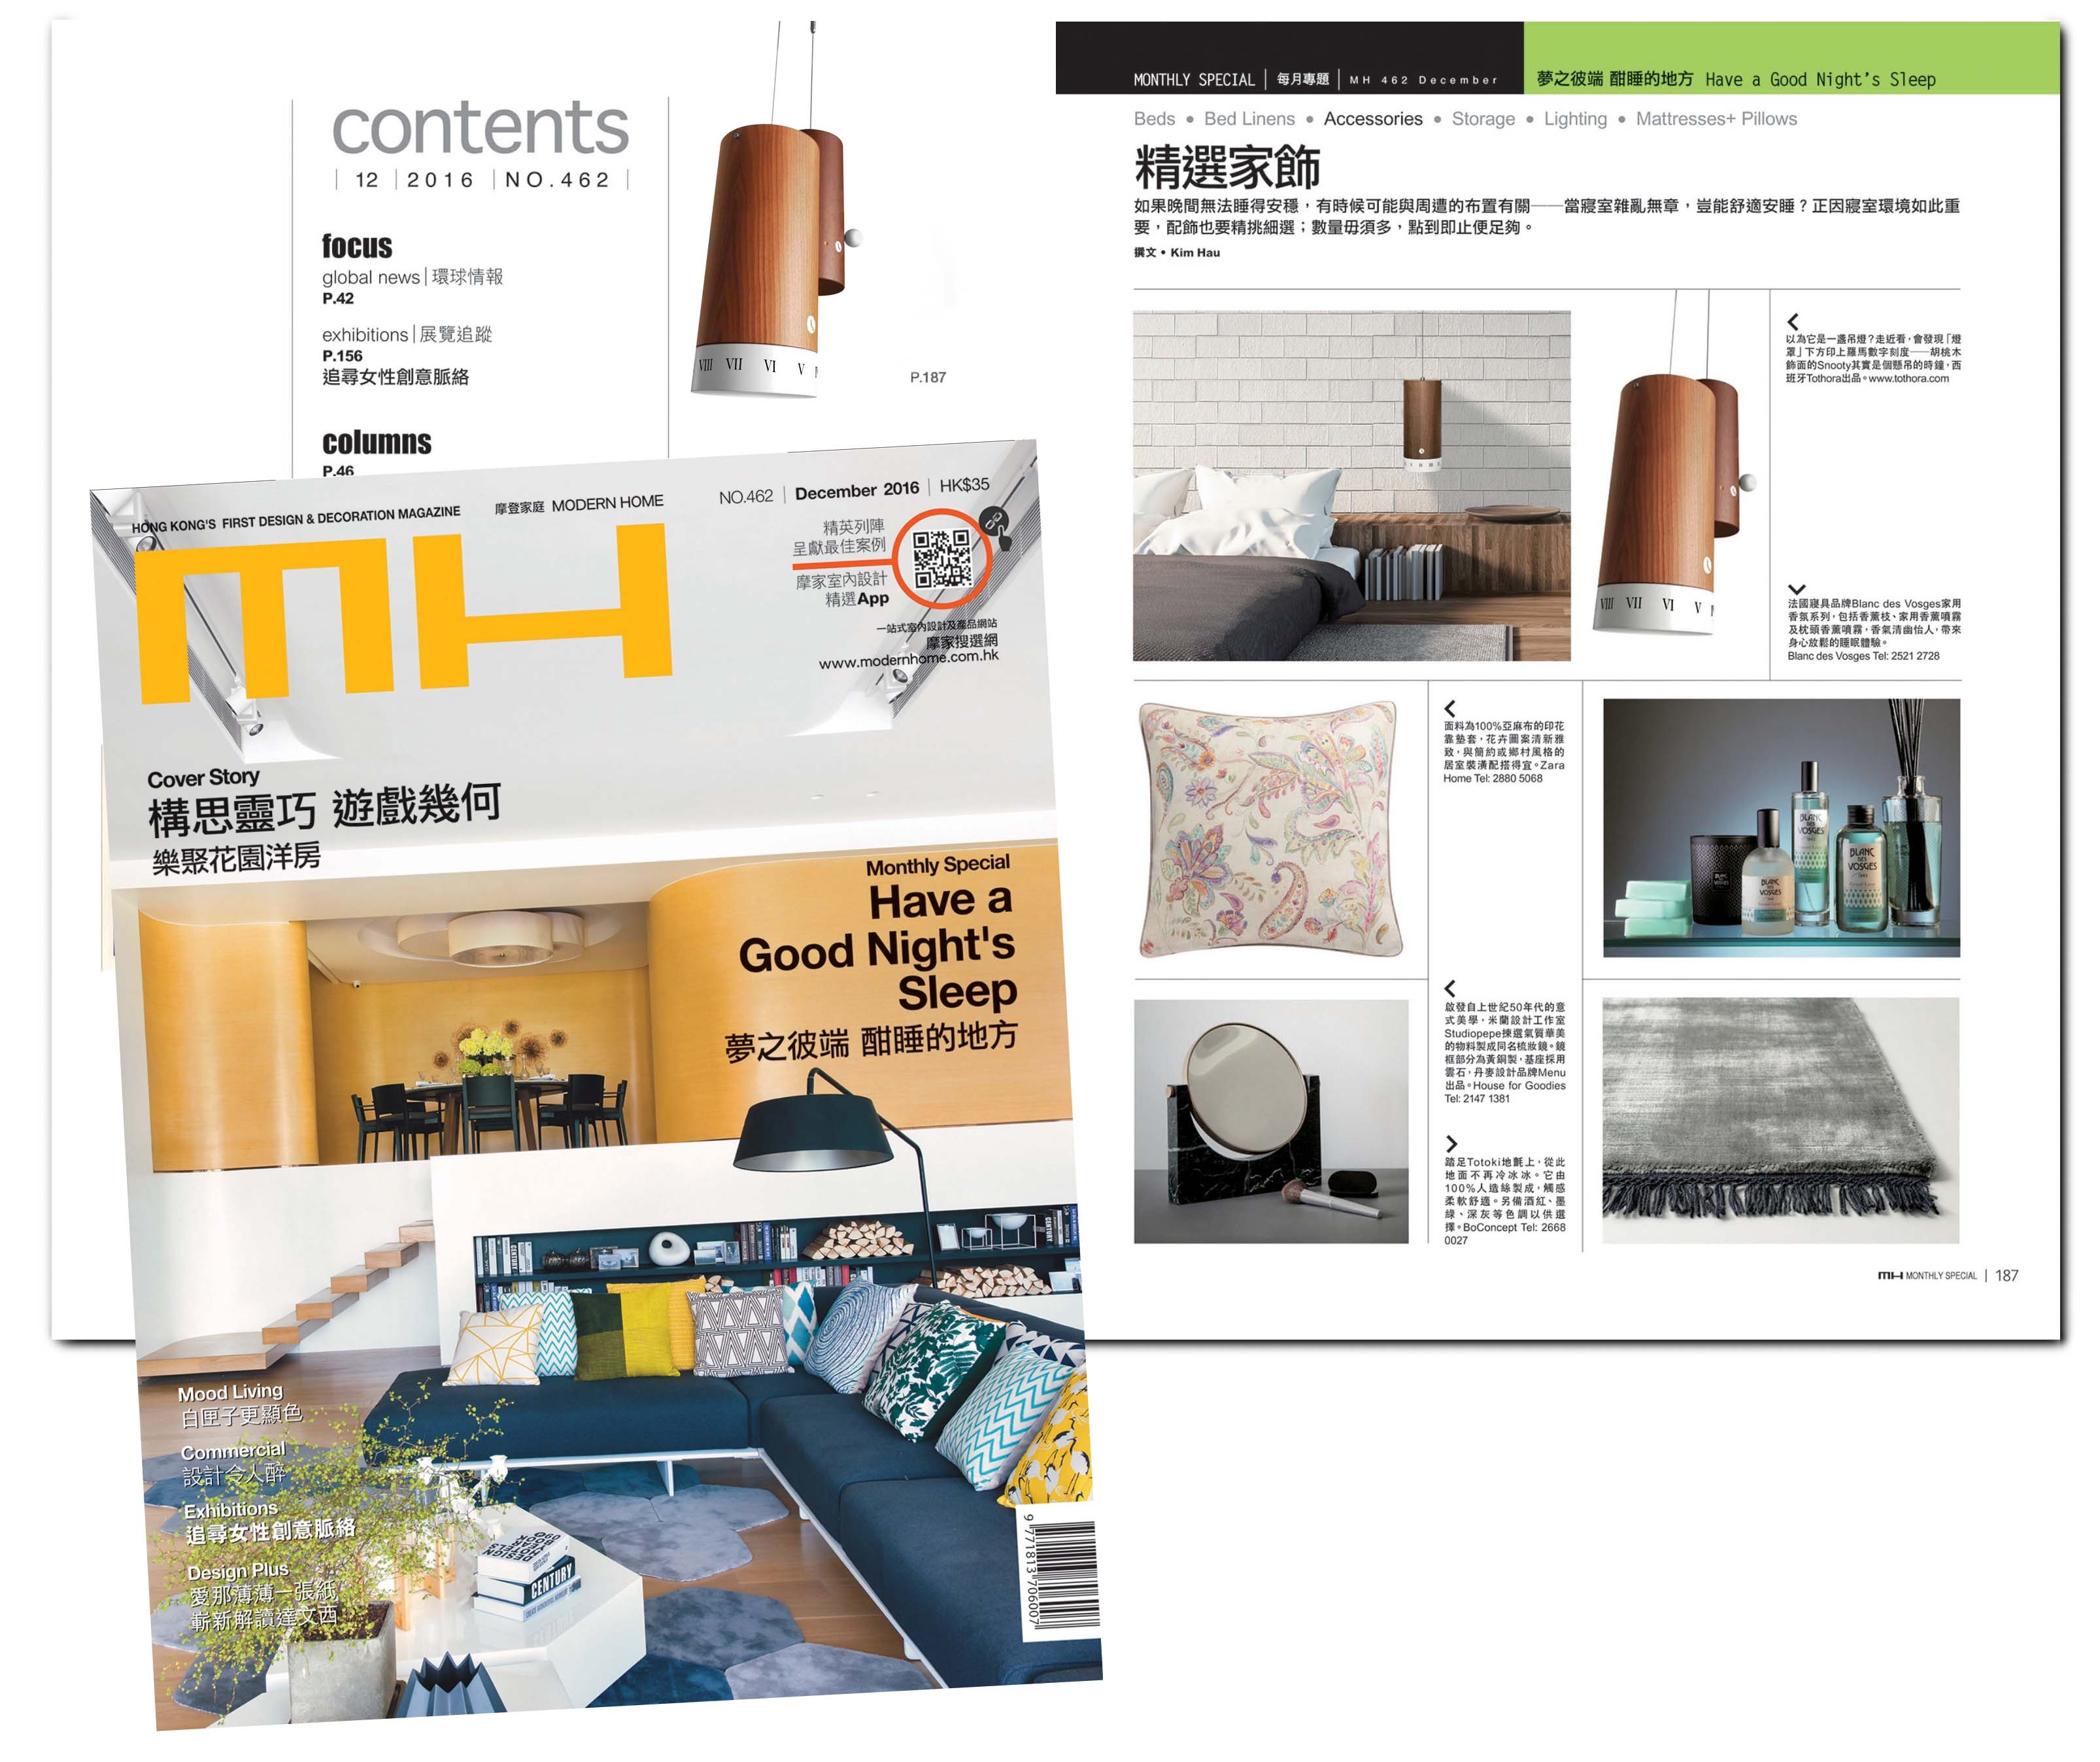 Tothora | The MH Modern Home Magazine of Hong Kong, talks about Tothora